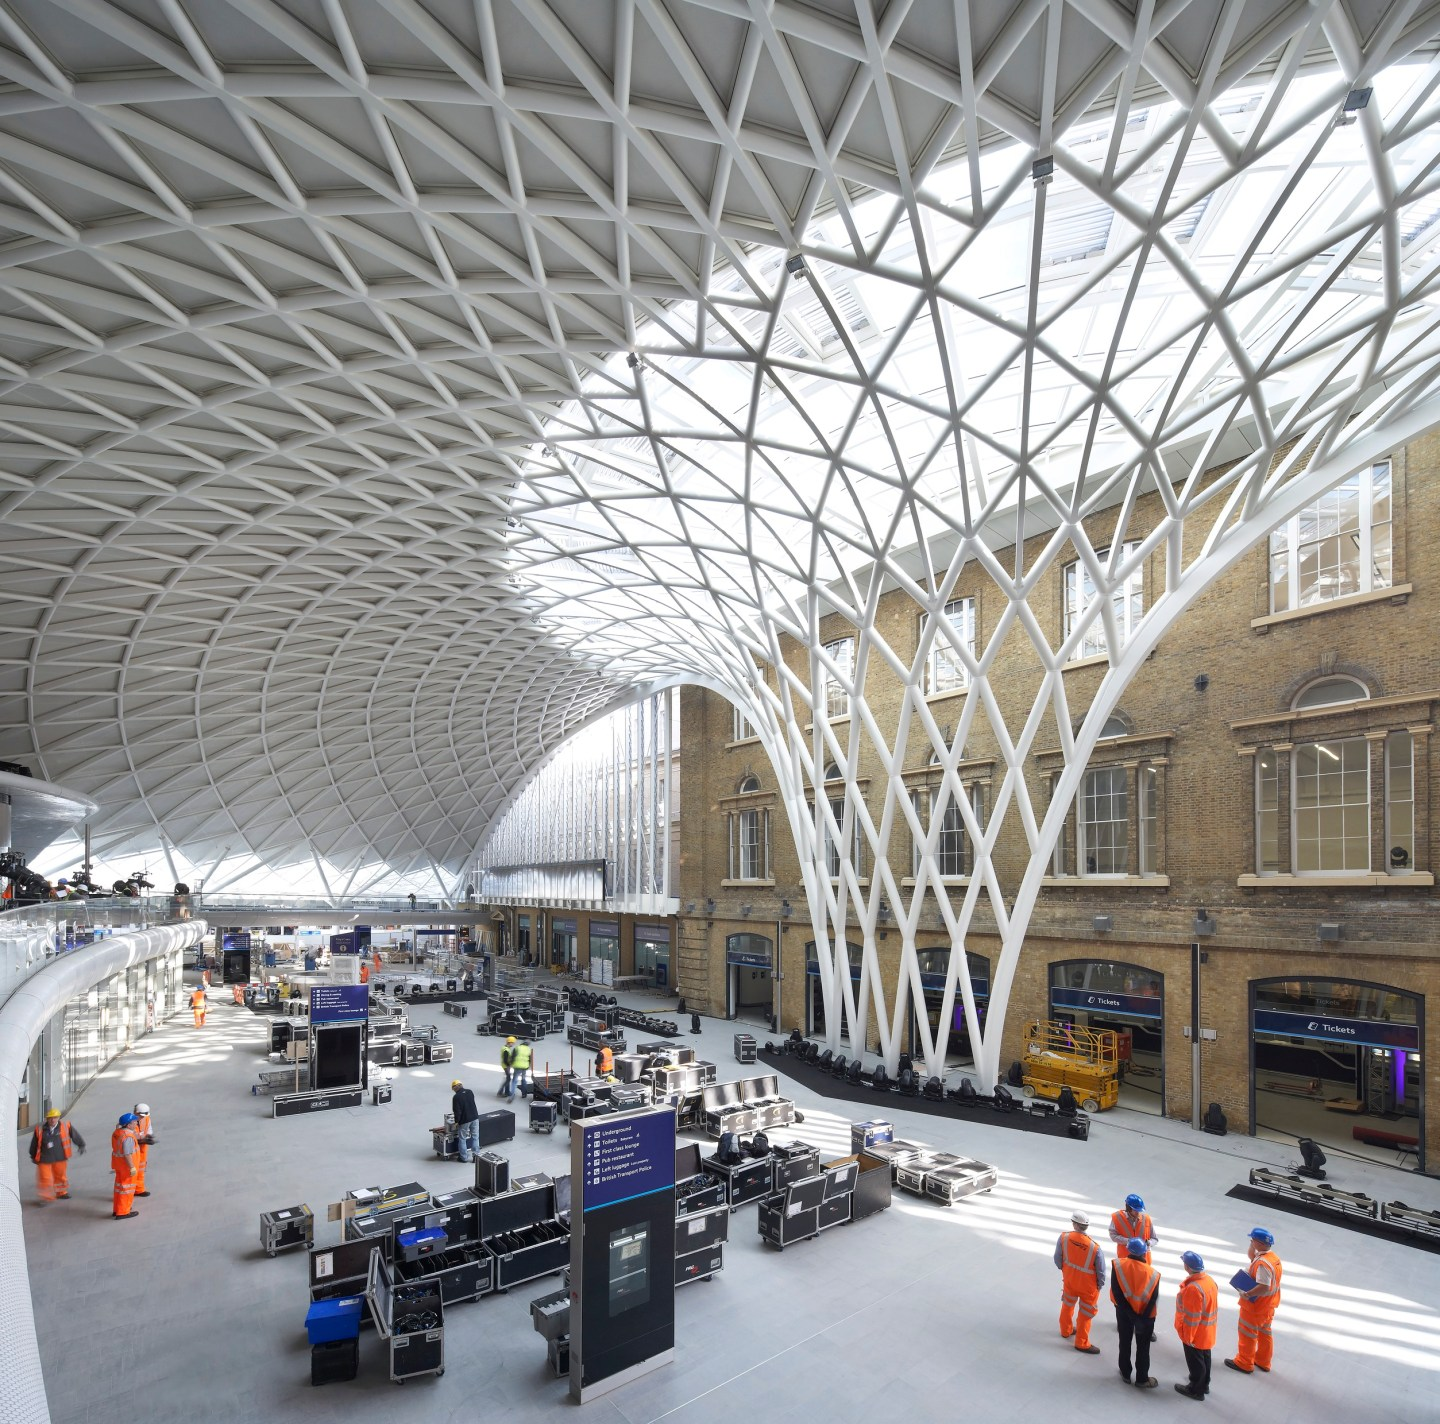 Kings-Cross-2-©-Hufton-and-Crow